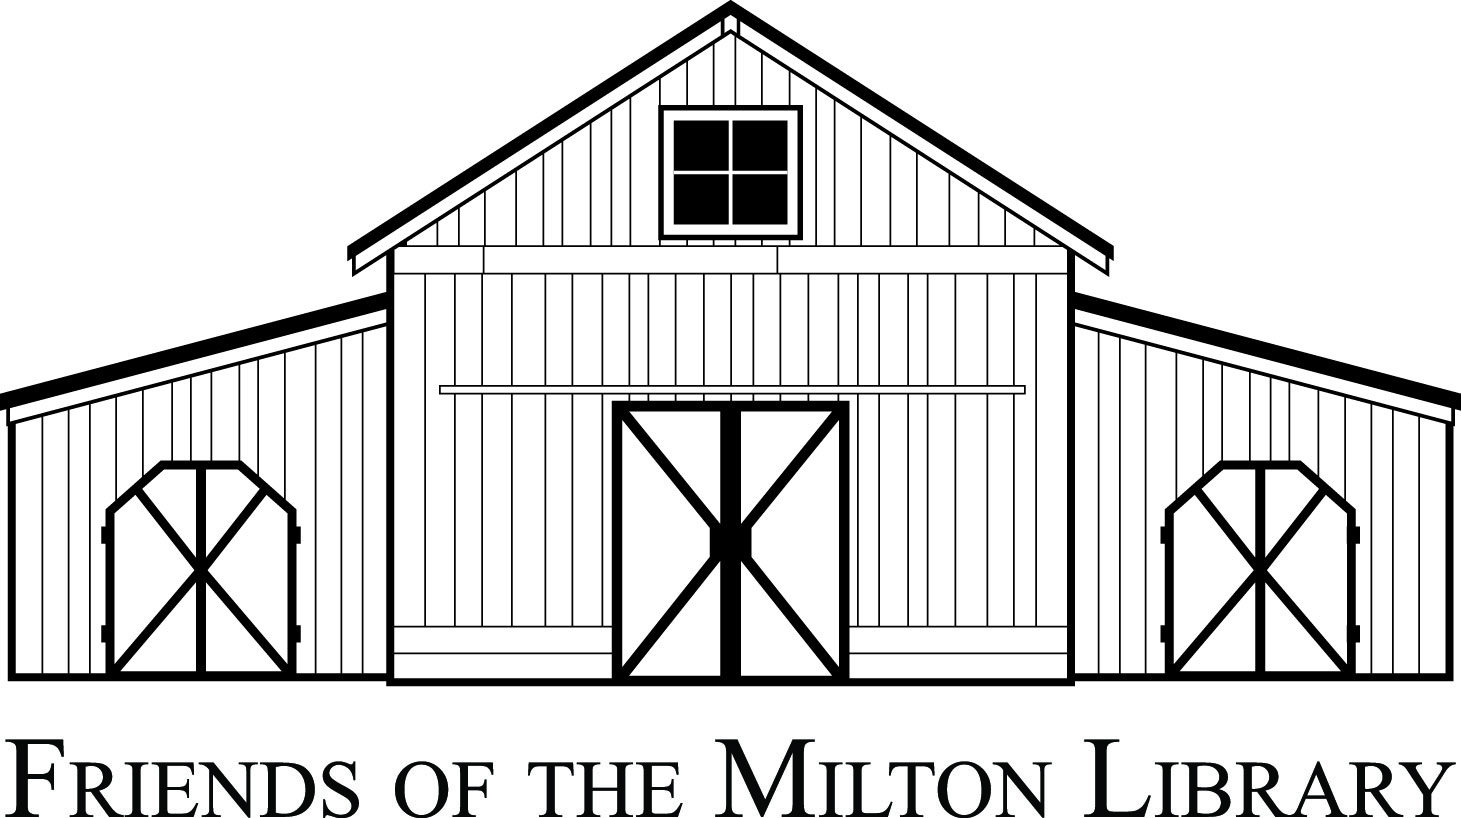 Friends of the Milton Library